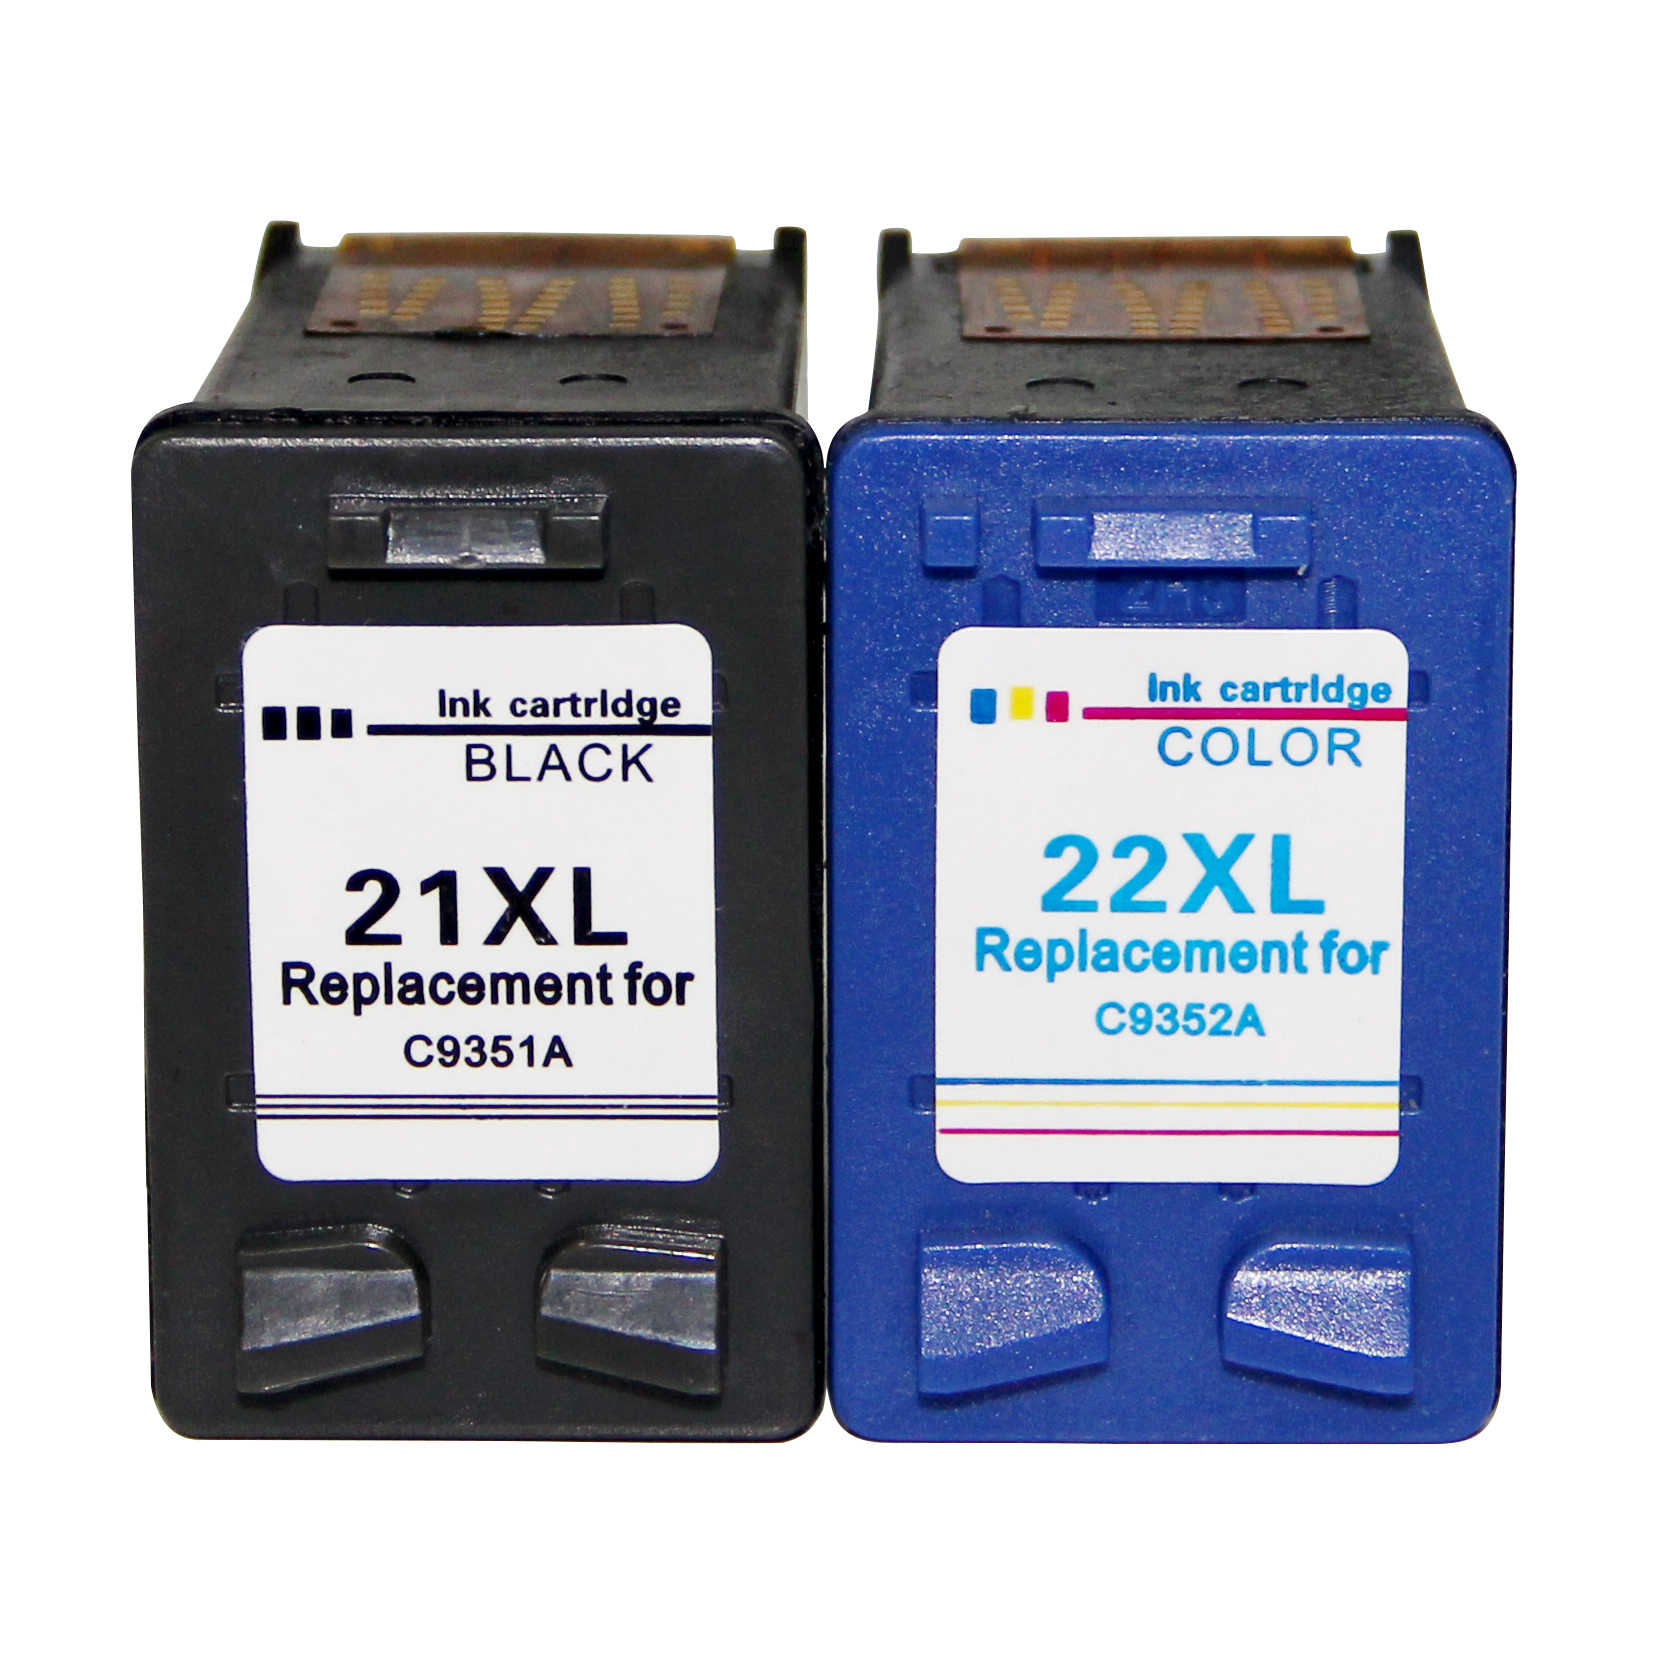 Veteran Cartridge Pengganti HP 21 22 Ink Cartridge HP 21 untuk HP Deskjet F2280 F2180 F4180 F300 F380 F2100 F2200 Printer